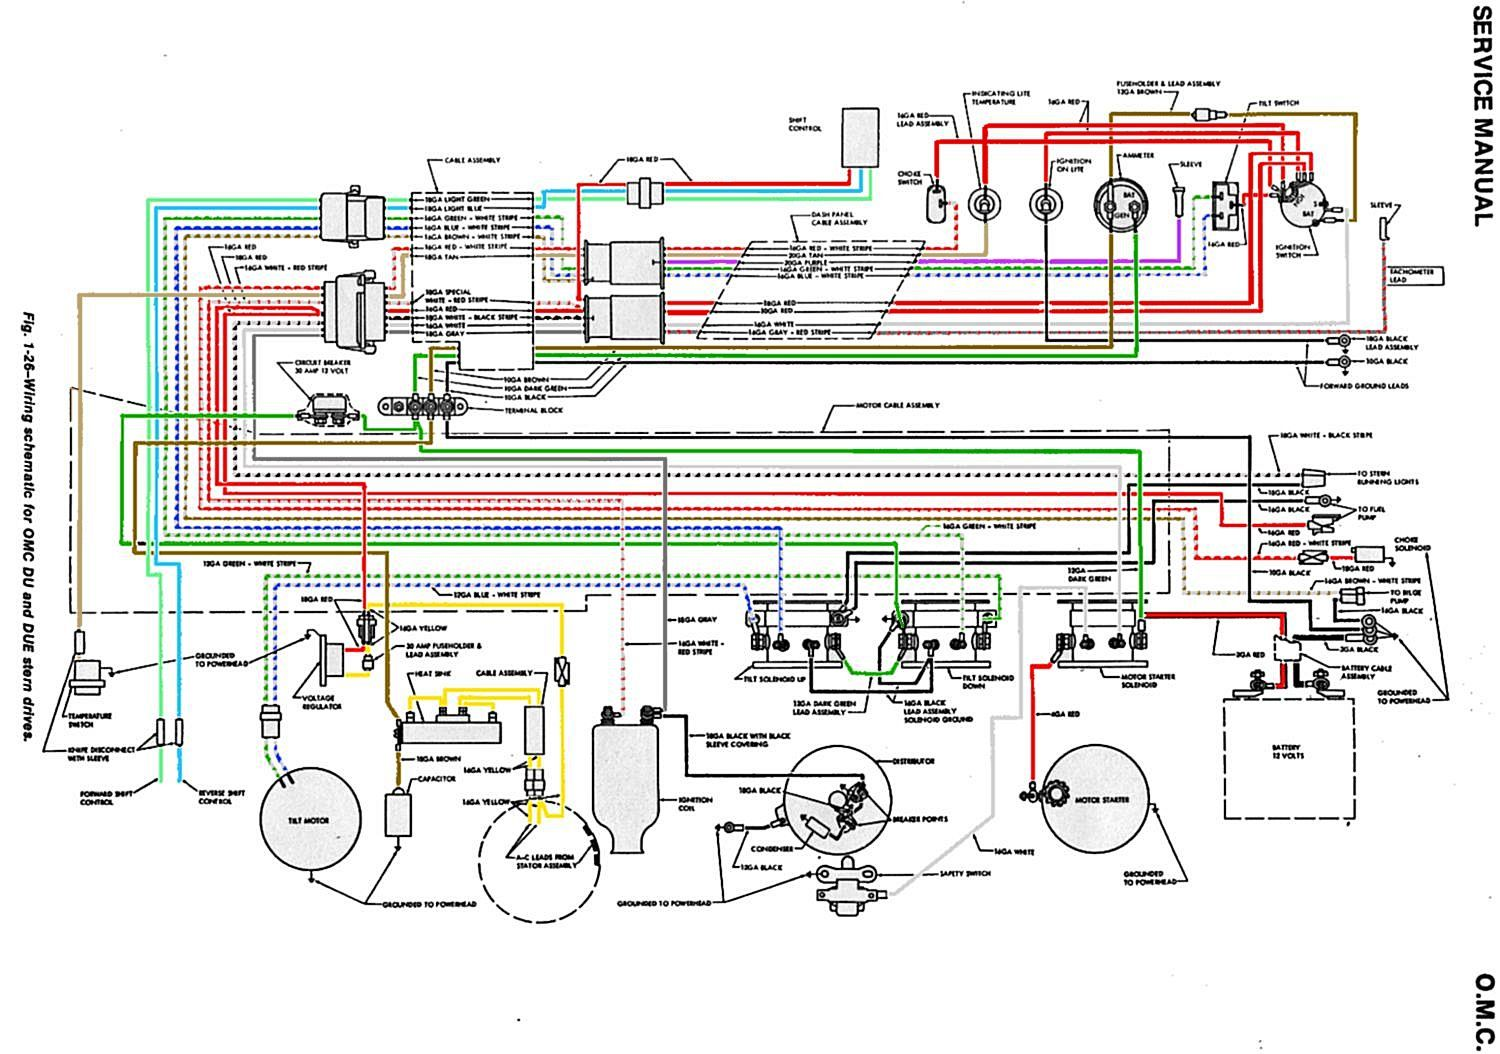 65 68_OMC_Wiring_Schematic omc boat technical info wiring diagram boat at n-0.co